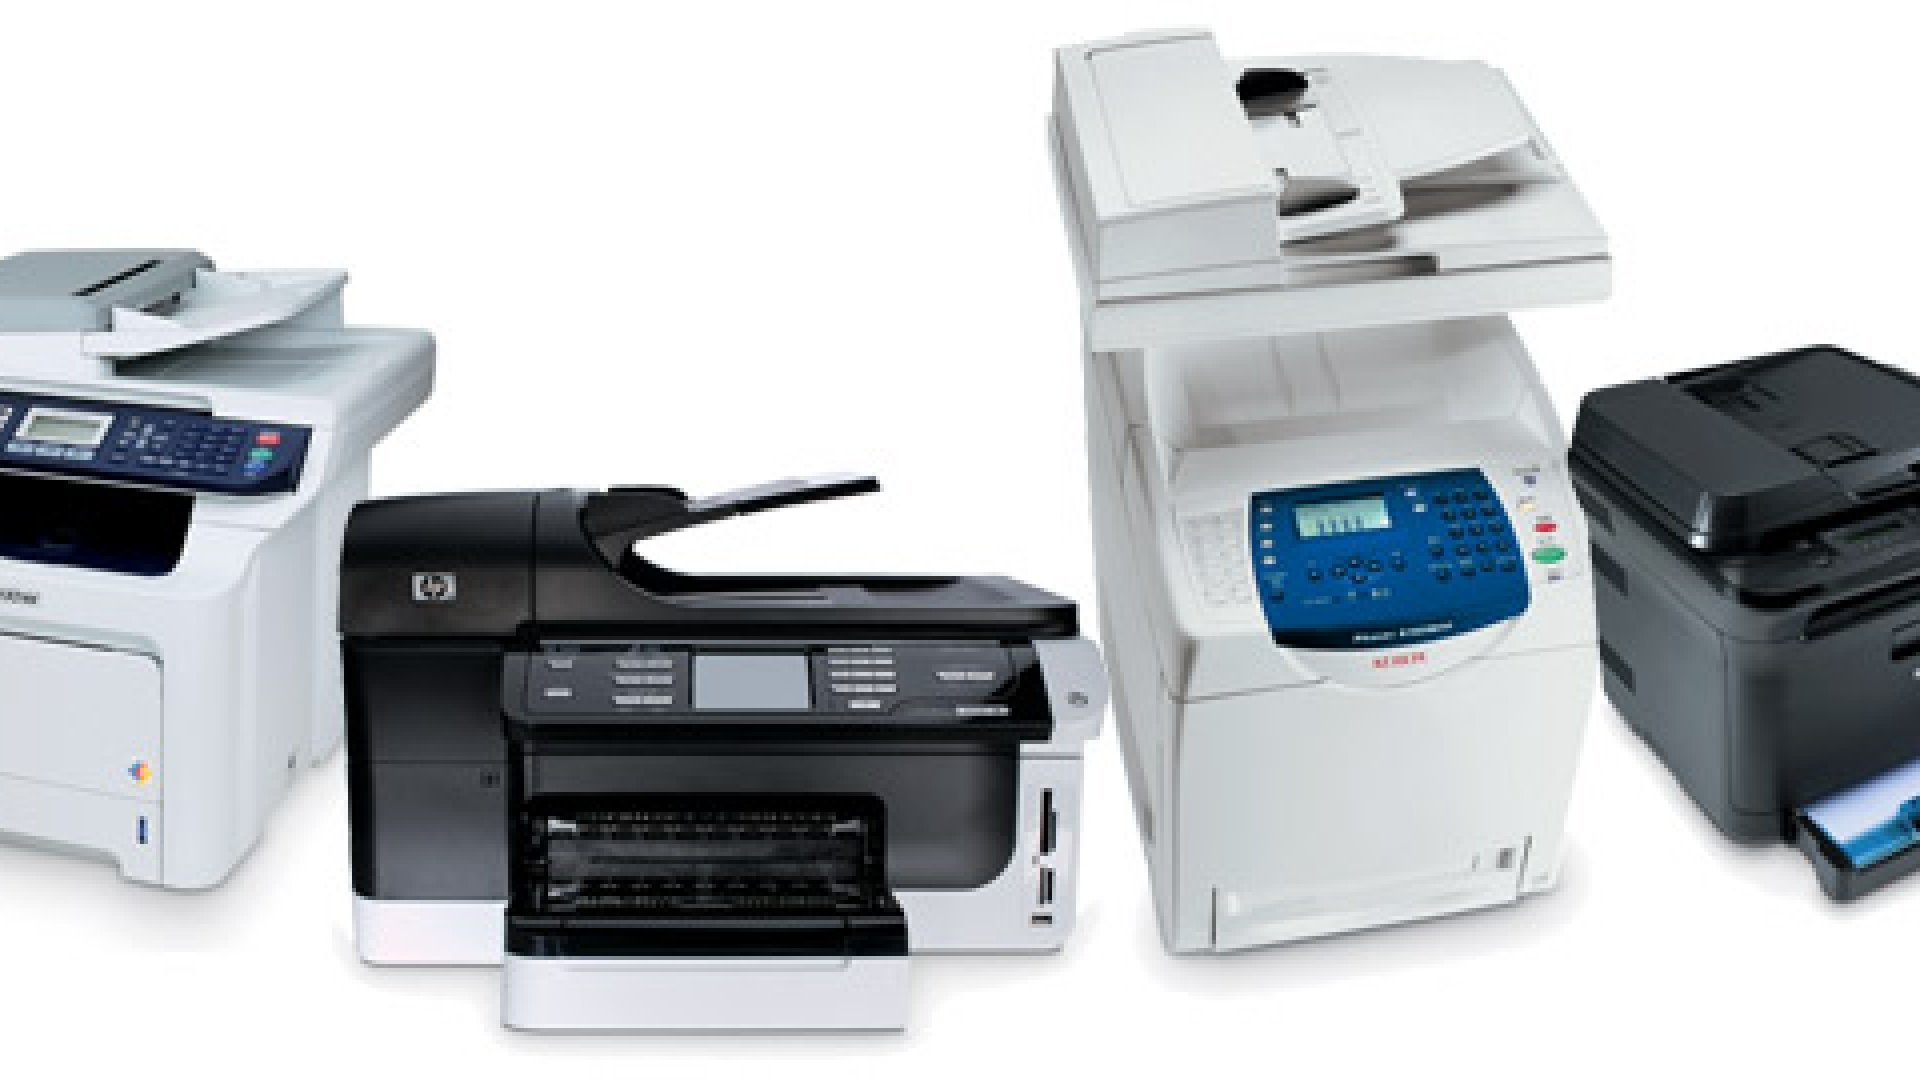 The Best Printers for Less Than $1,000